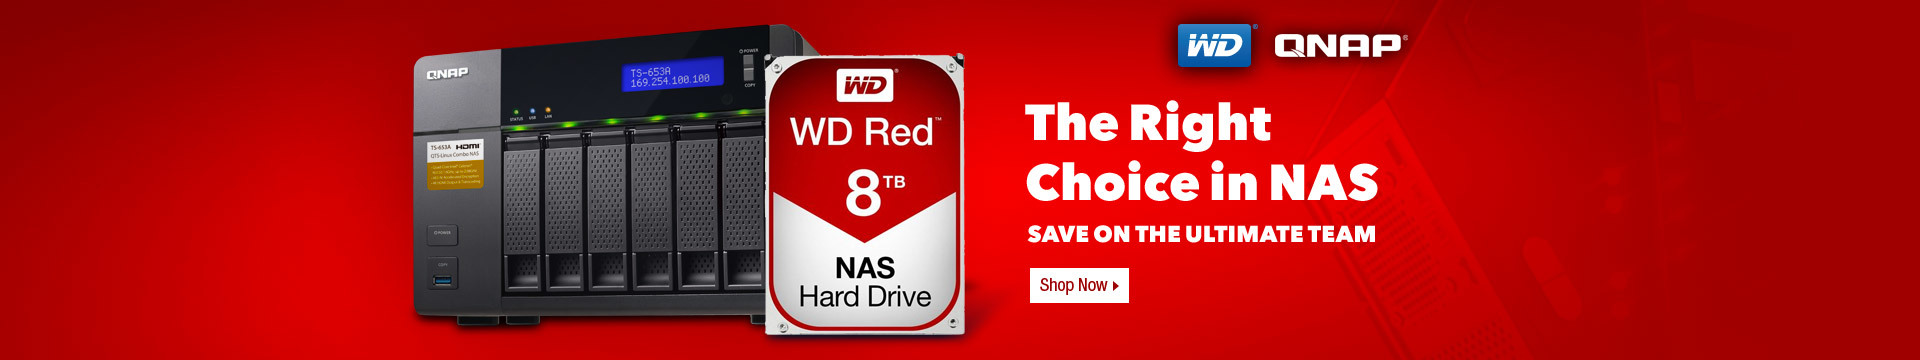 The Right Choice in NAS